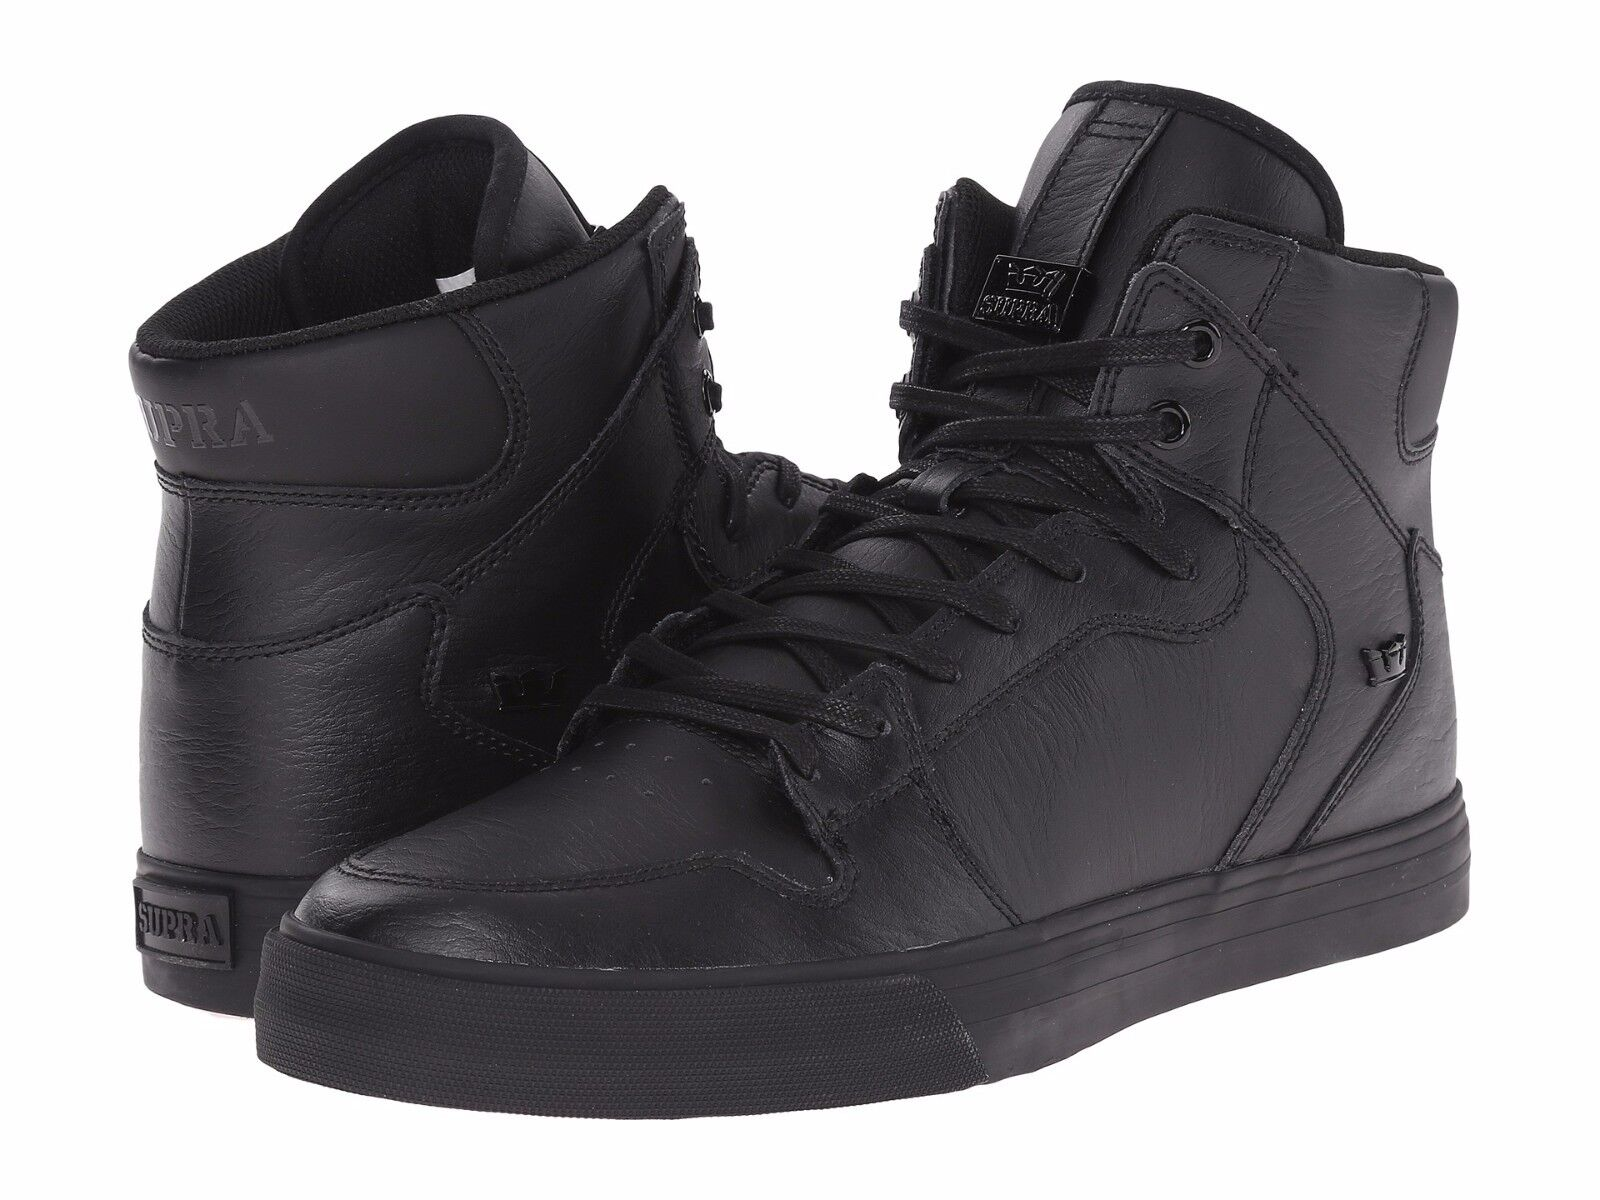 NEW SUPRA VAIDER BLACK BLACK LEATHER 08201-081 HIP HOP SKATEBOARDING SHOES 11.5